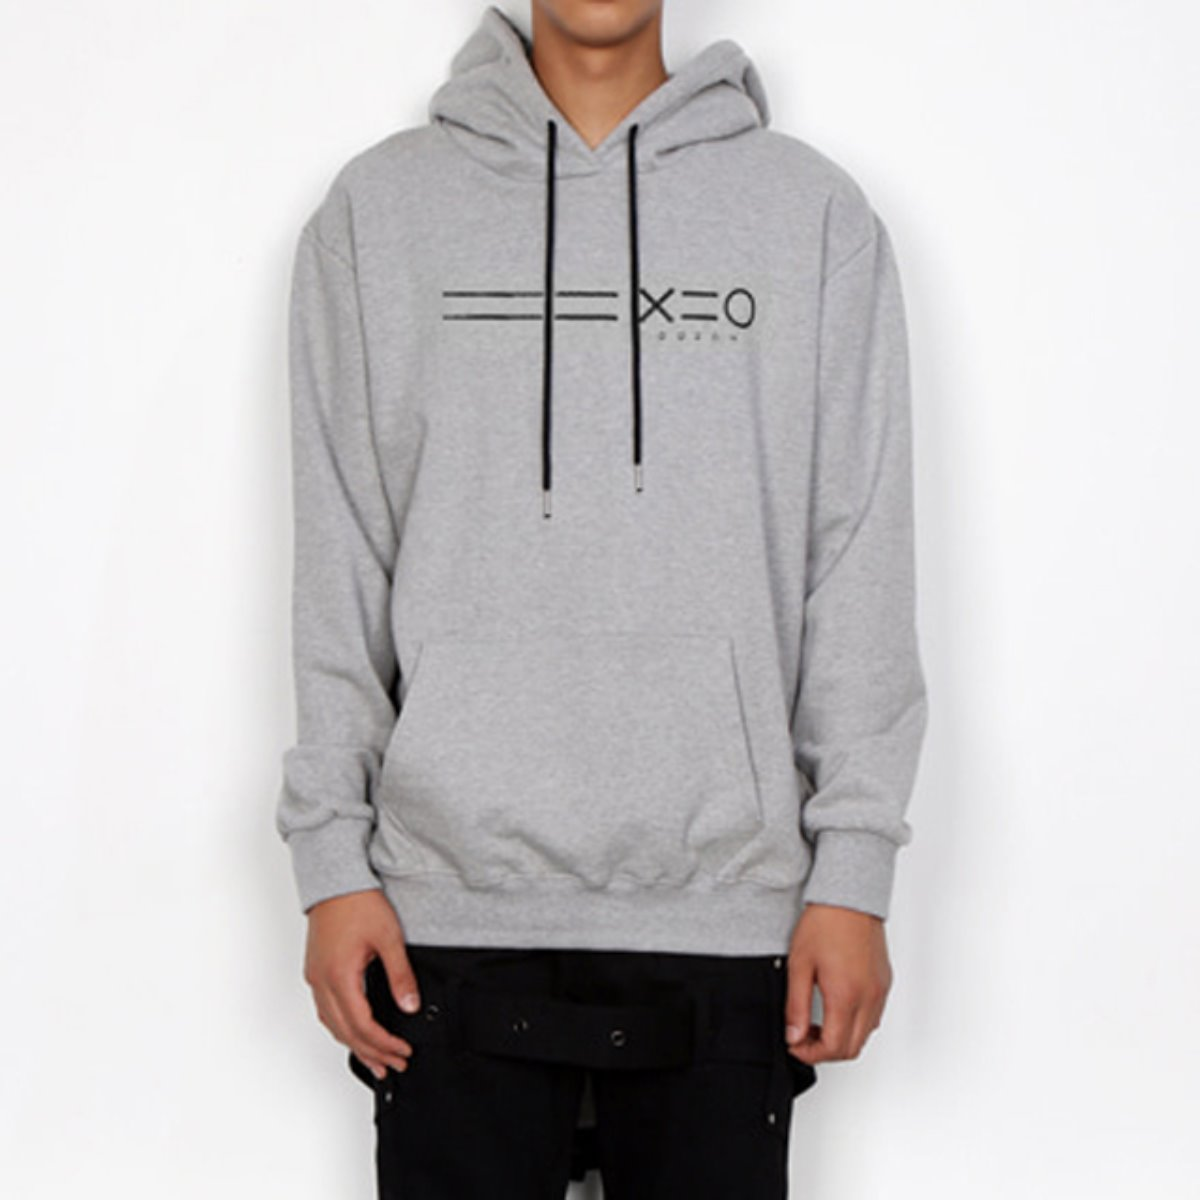 BLACK EQUAL LINE & LOGO HOODIE SWEATSHIRTS(GREY)